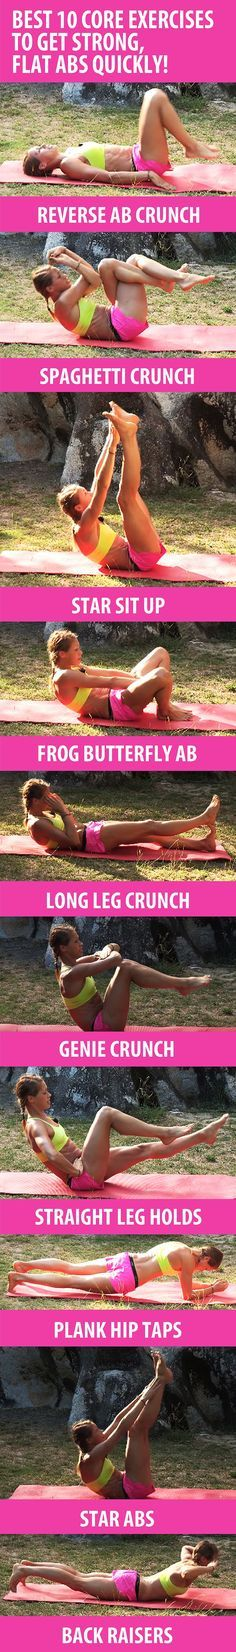 These 10 core exercises will help you sculpt six-pack abs, build core strength, and get rid of belly fat quickly. Recommended reps: BEGINNERS 8-10, INTERMEDIATE 10-15, ADVANCED 20-30+